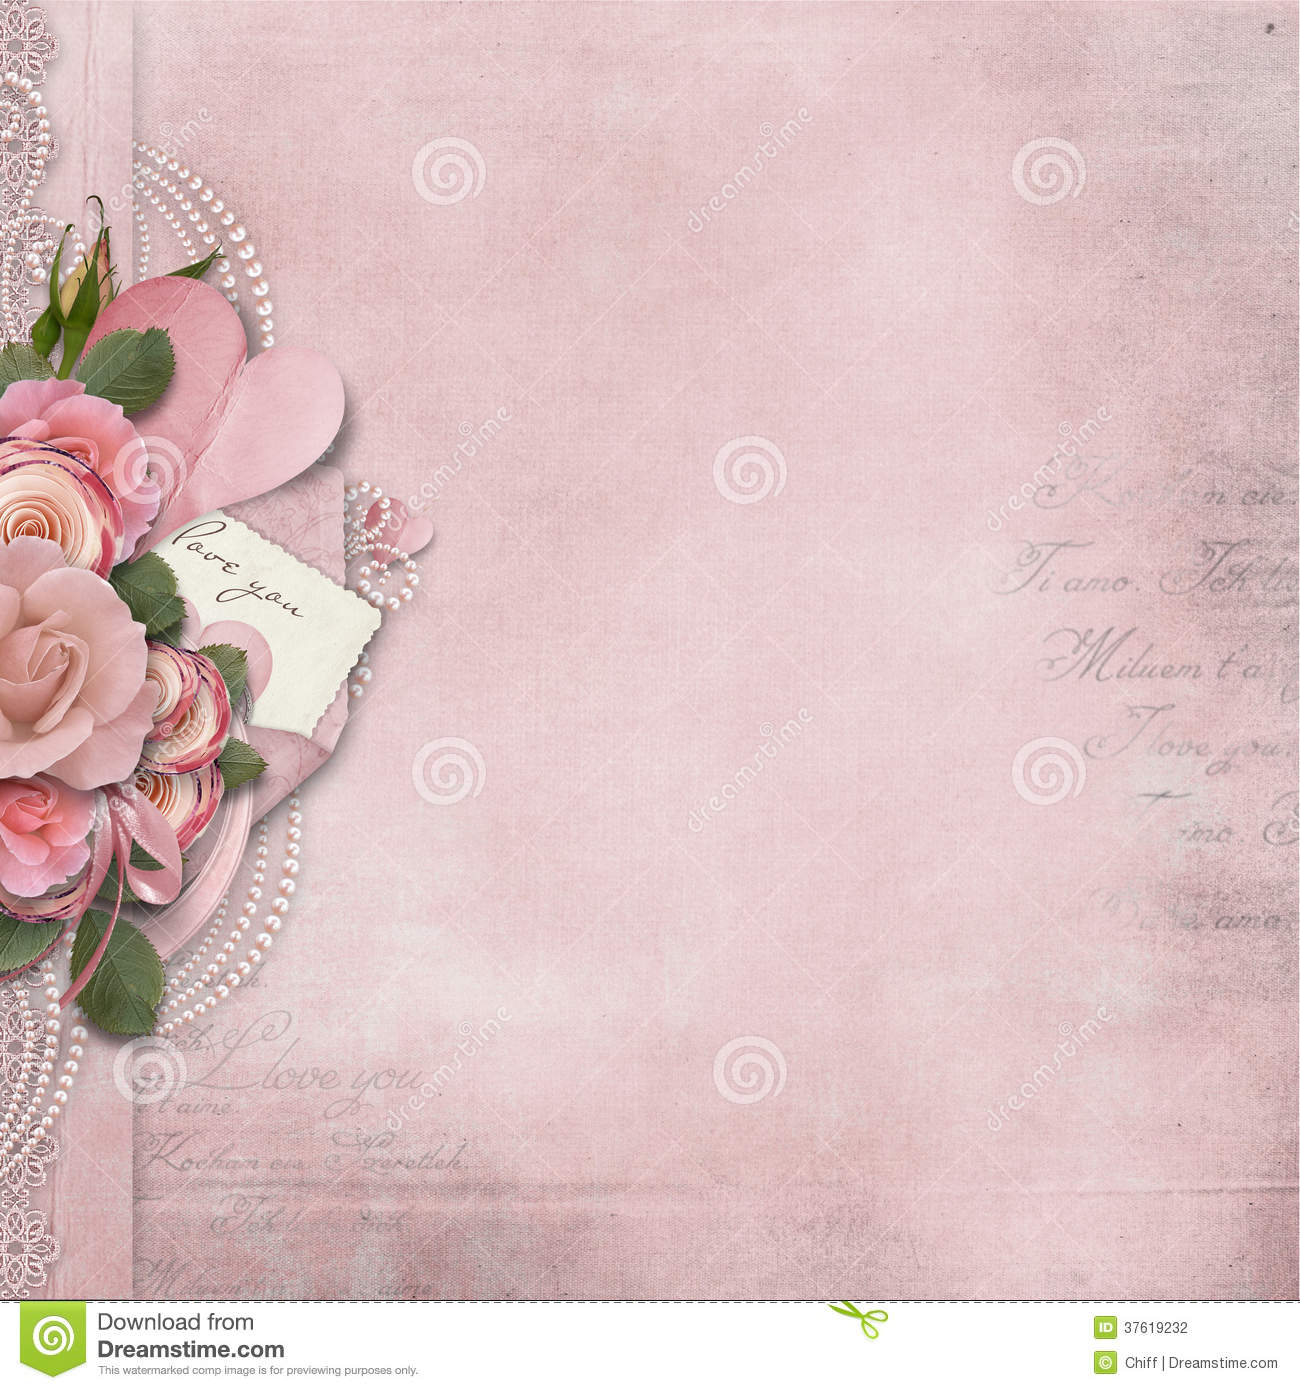 vintage love background with pink roses and heart stock illustration